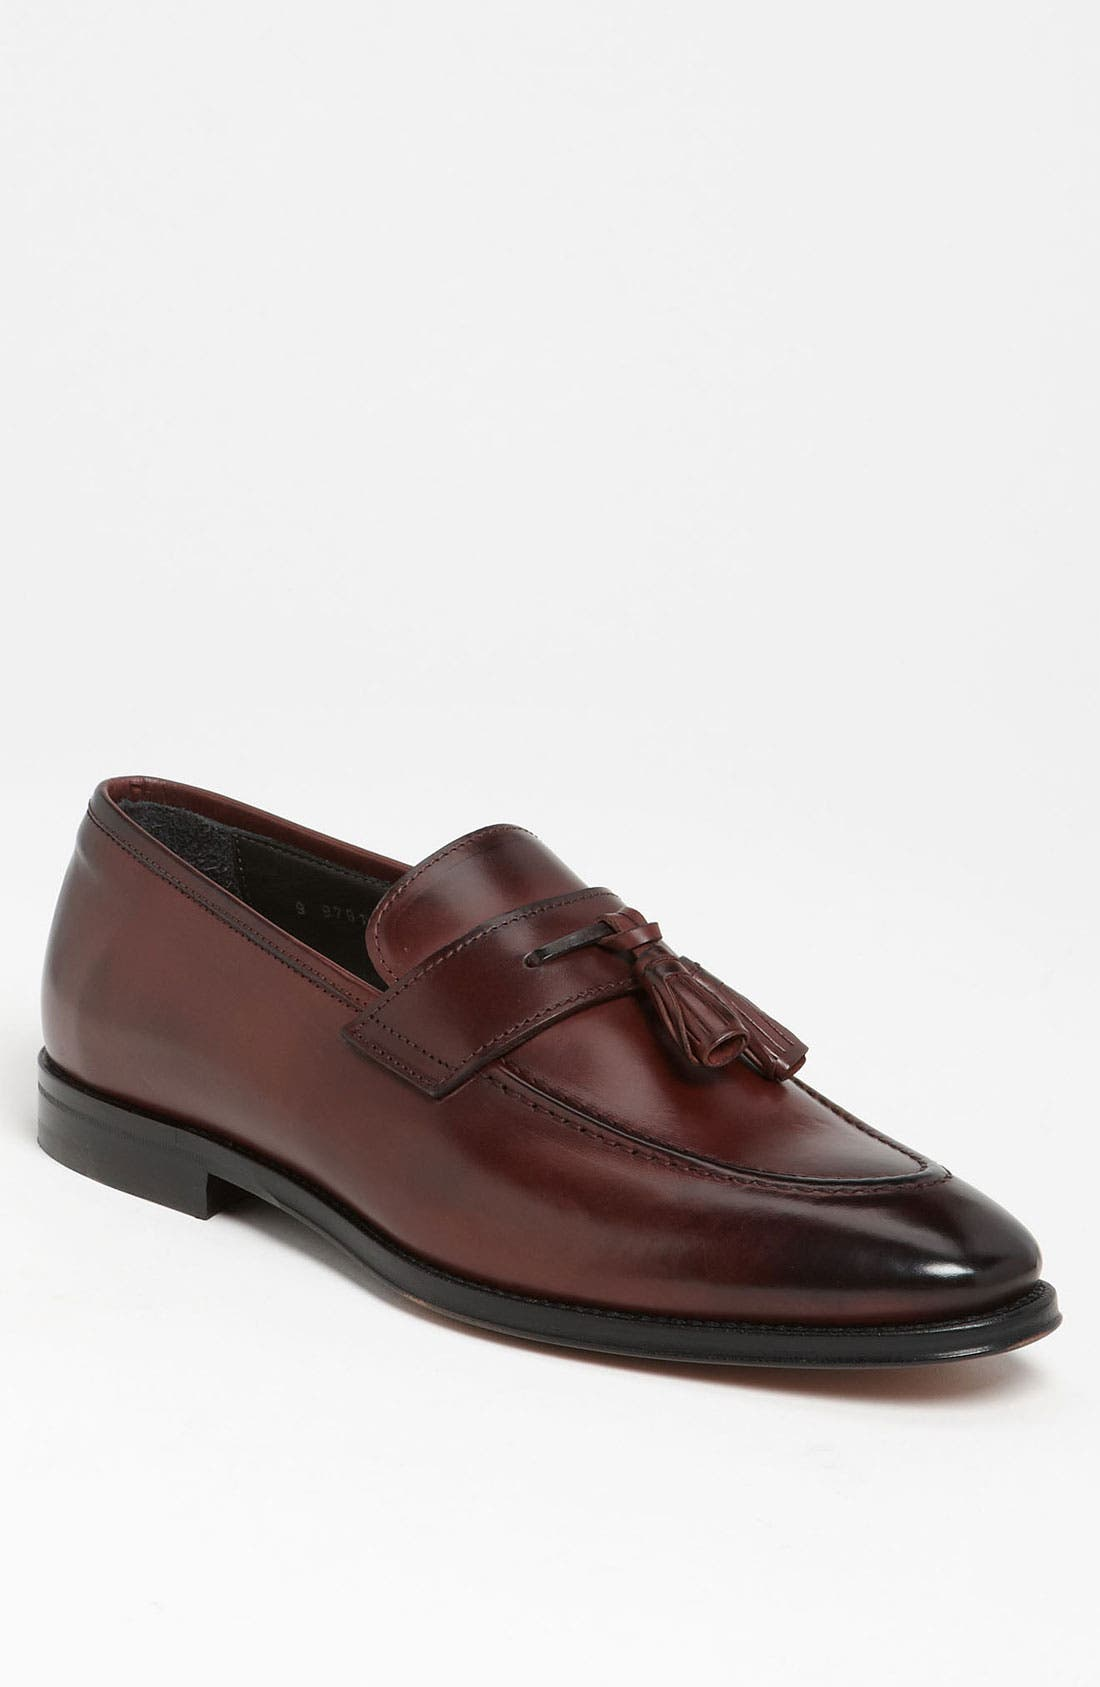 Main Image - To Boot New York Tassel Loafer